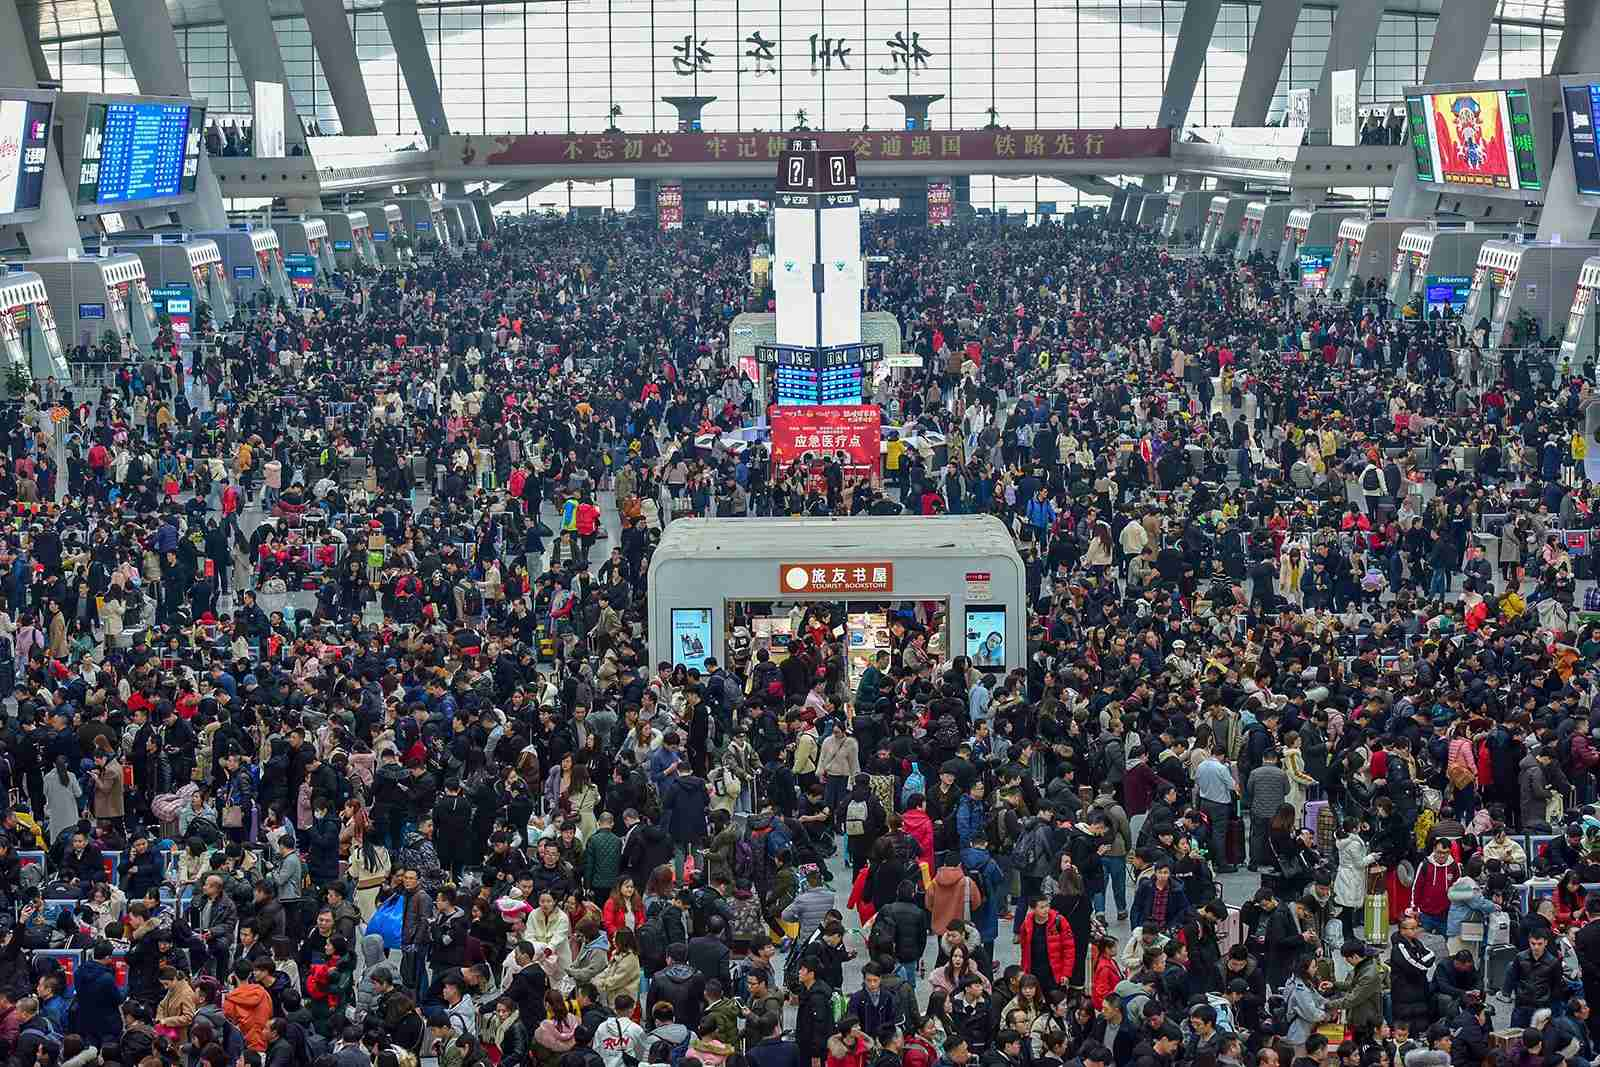 Passengers swarm the East railway station. (Photo by Xu Hui/VCG via Getty Images)